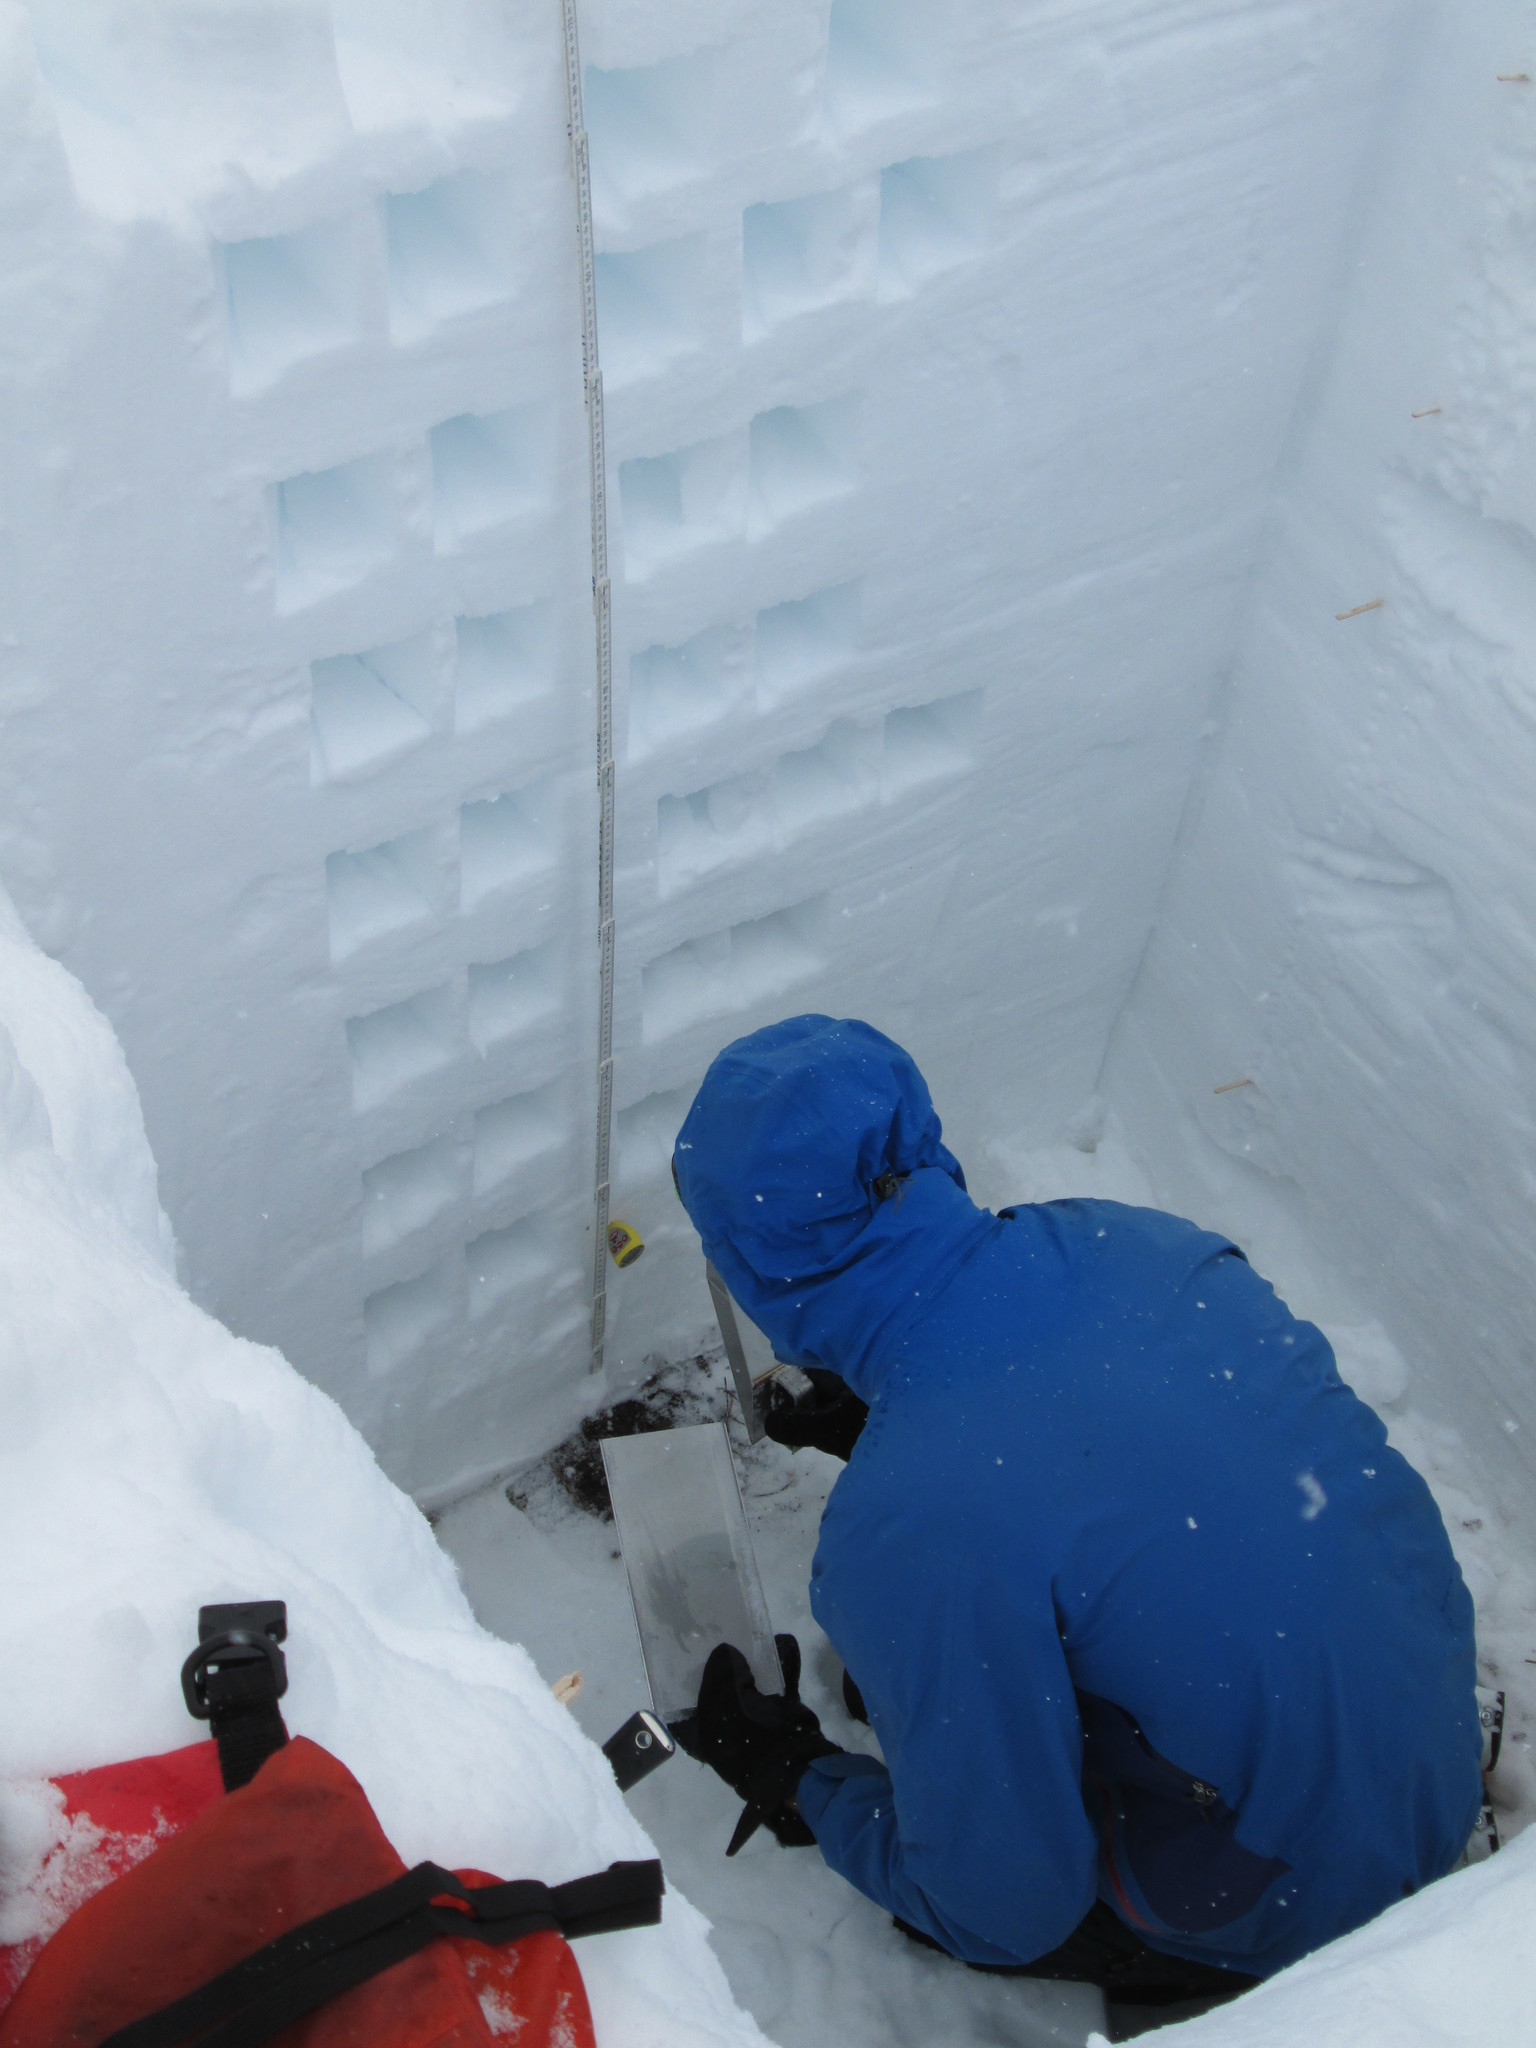 A SnowEx scientist calculates the snow water equivalent by carving out a section of smoothed wall in a snow pit on Feb. 6.